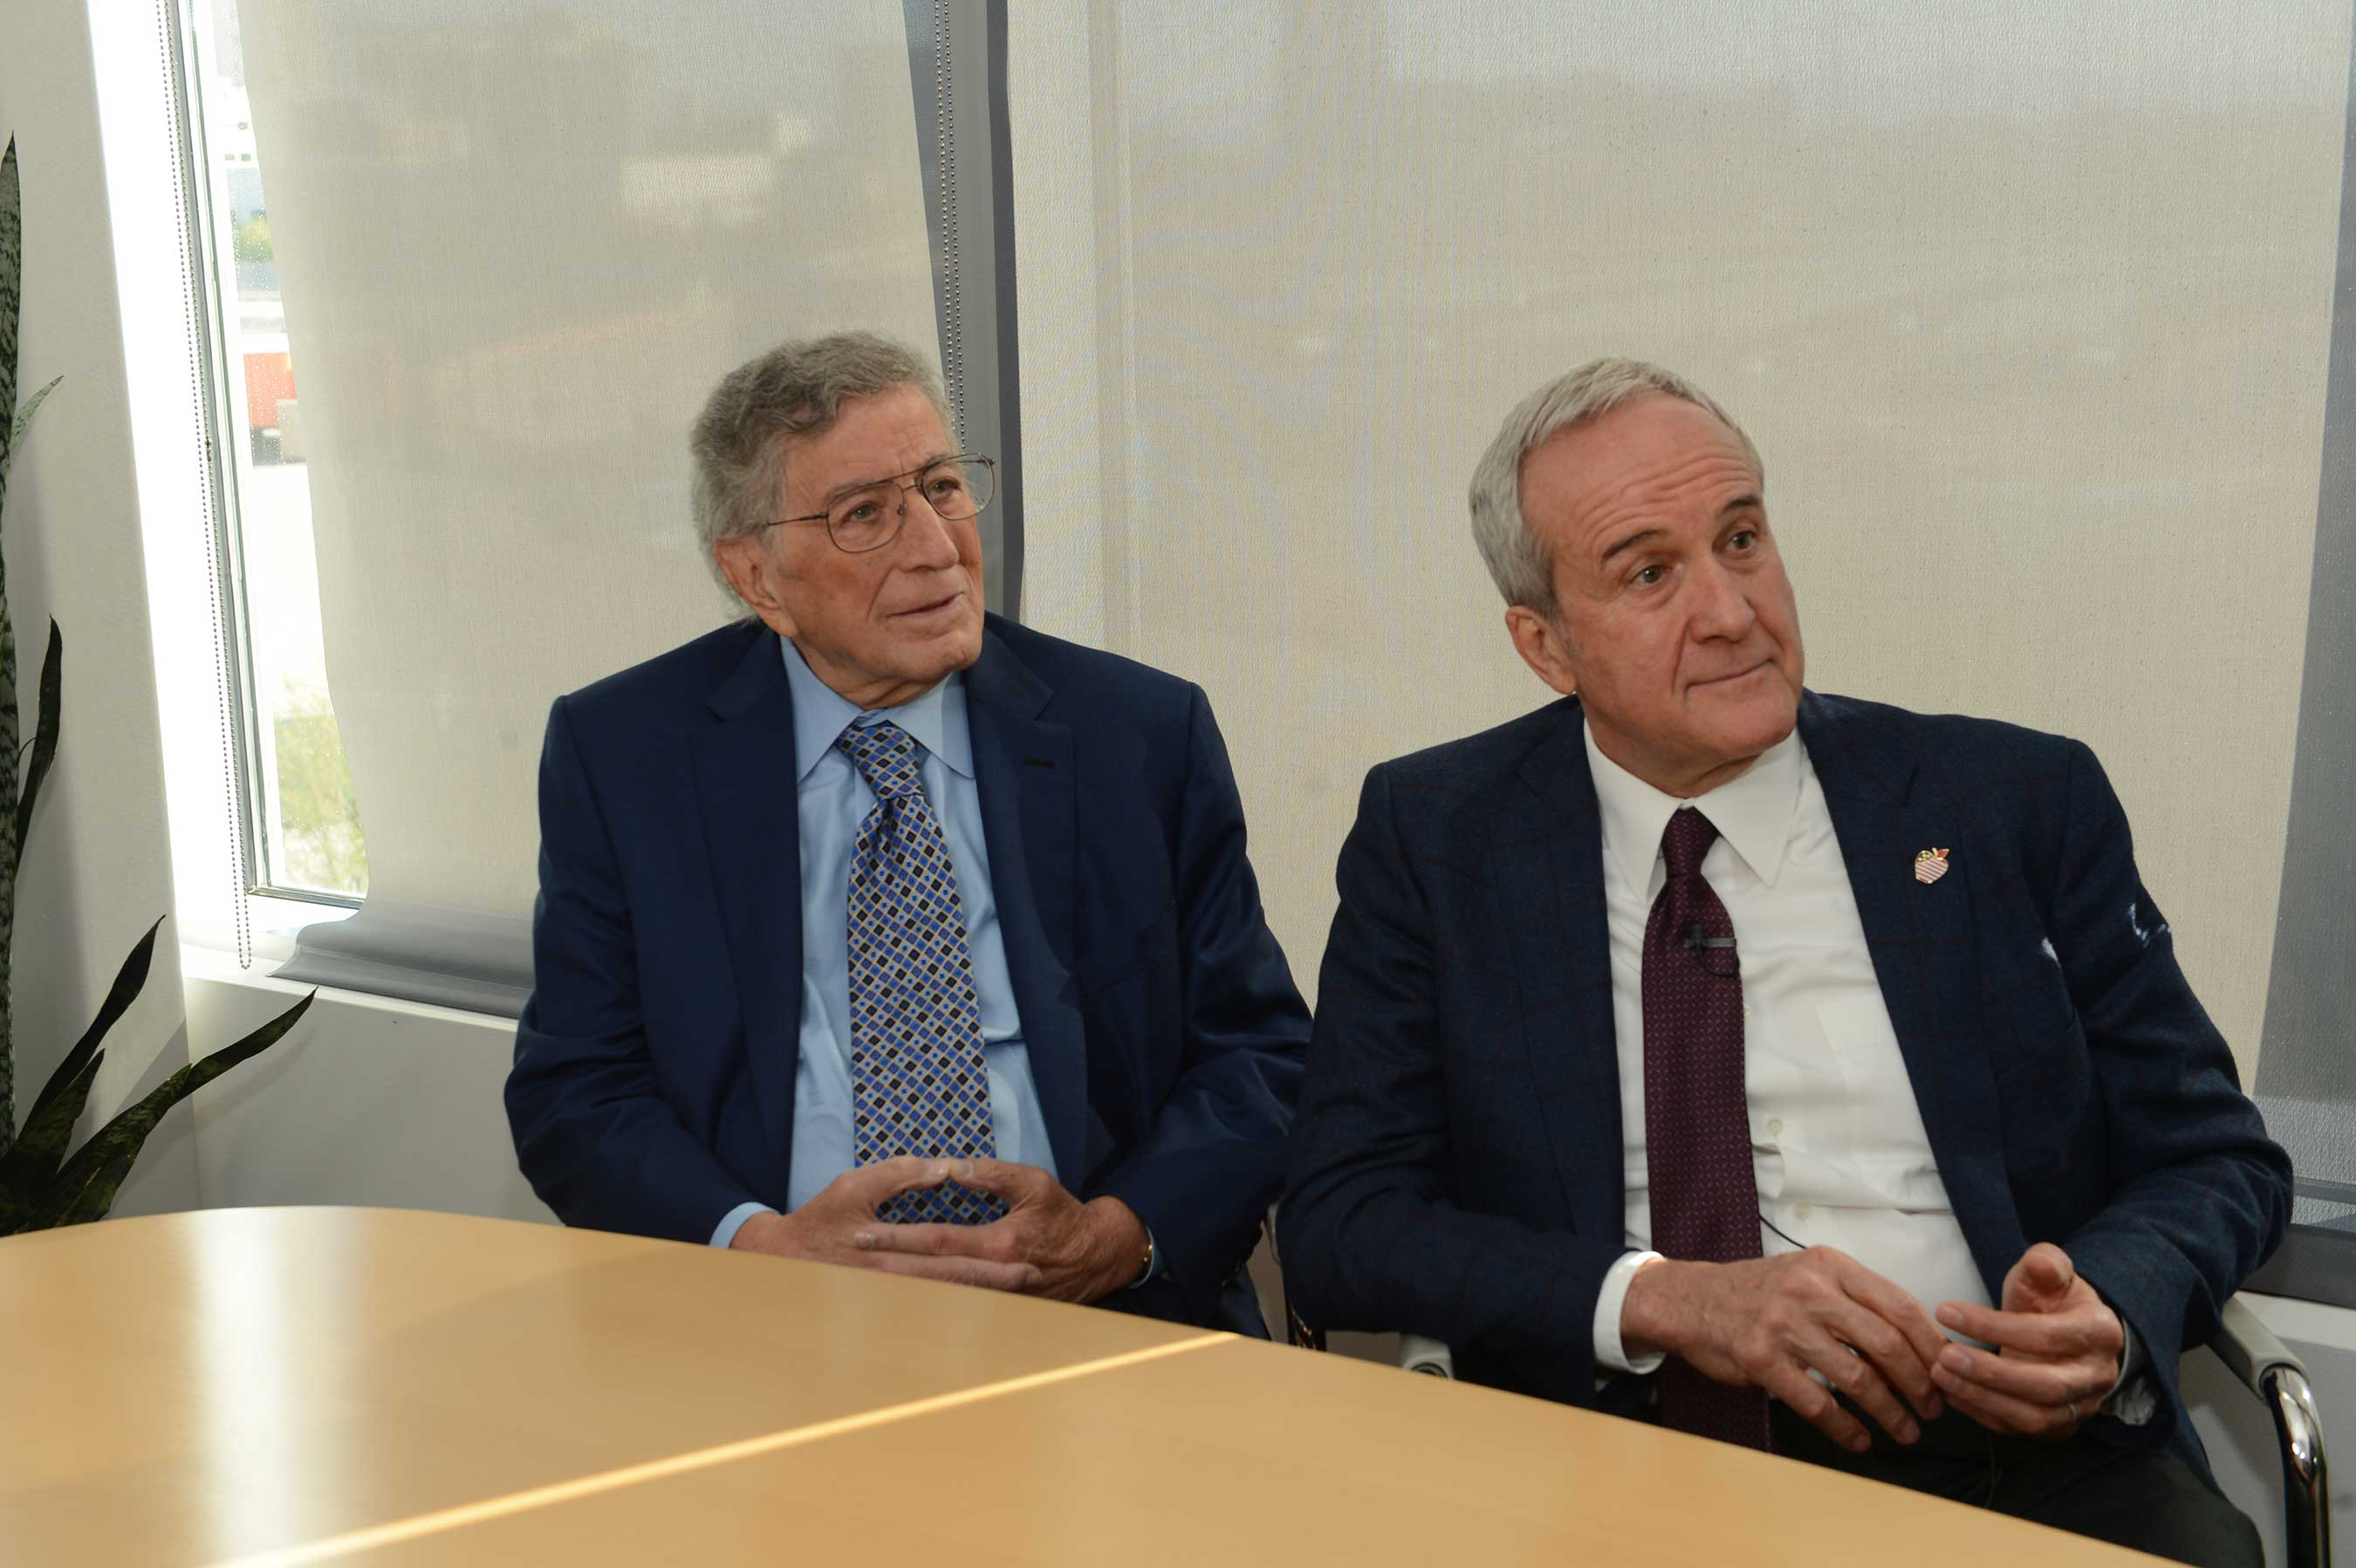 2016 Power of Love gala honoree, Tony Bennett (L), and Keep Memory Alive founder Larry Ruvo (R) listen to a presentation by Director Dr. Cummings at Cleveland Clinic Lou Ruvo Center for Brain Health